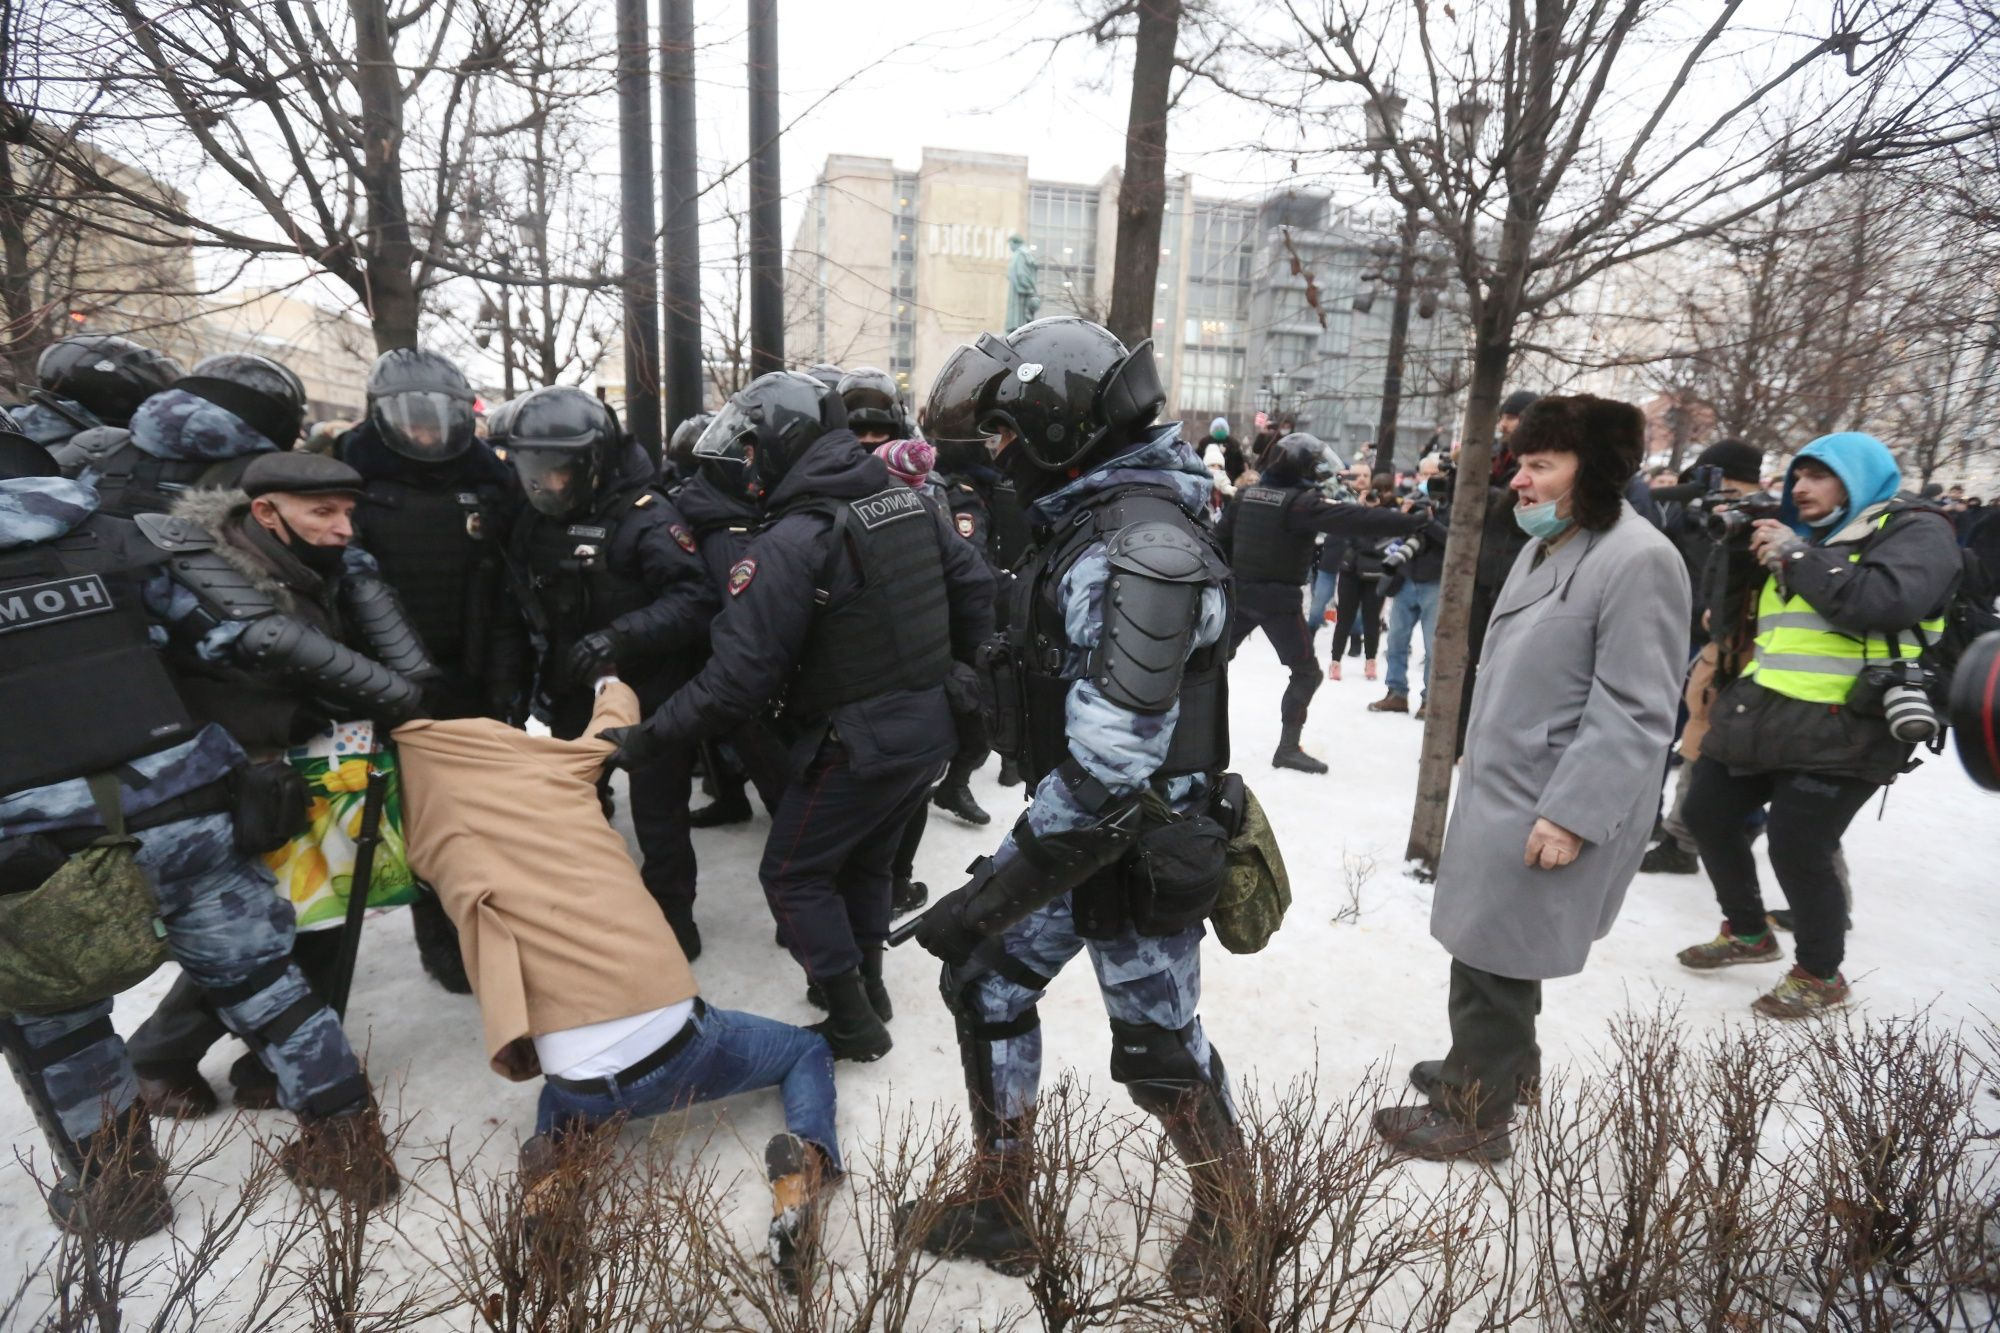 Riot police detain a supporter of Alexey Navalny, Russian opposition leader, during a demonstration in Moscow, Russia, on Saturday, Jan. 23, 2021. Navalny is Russia's most prominent opposition figure, an anti-corruption investigator whose exposés have targeted President Vladimir Putin's inner circle.